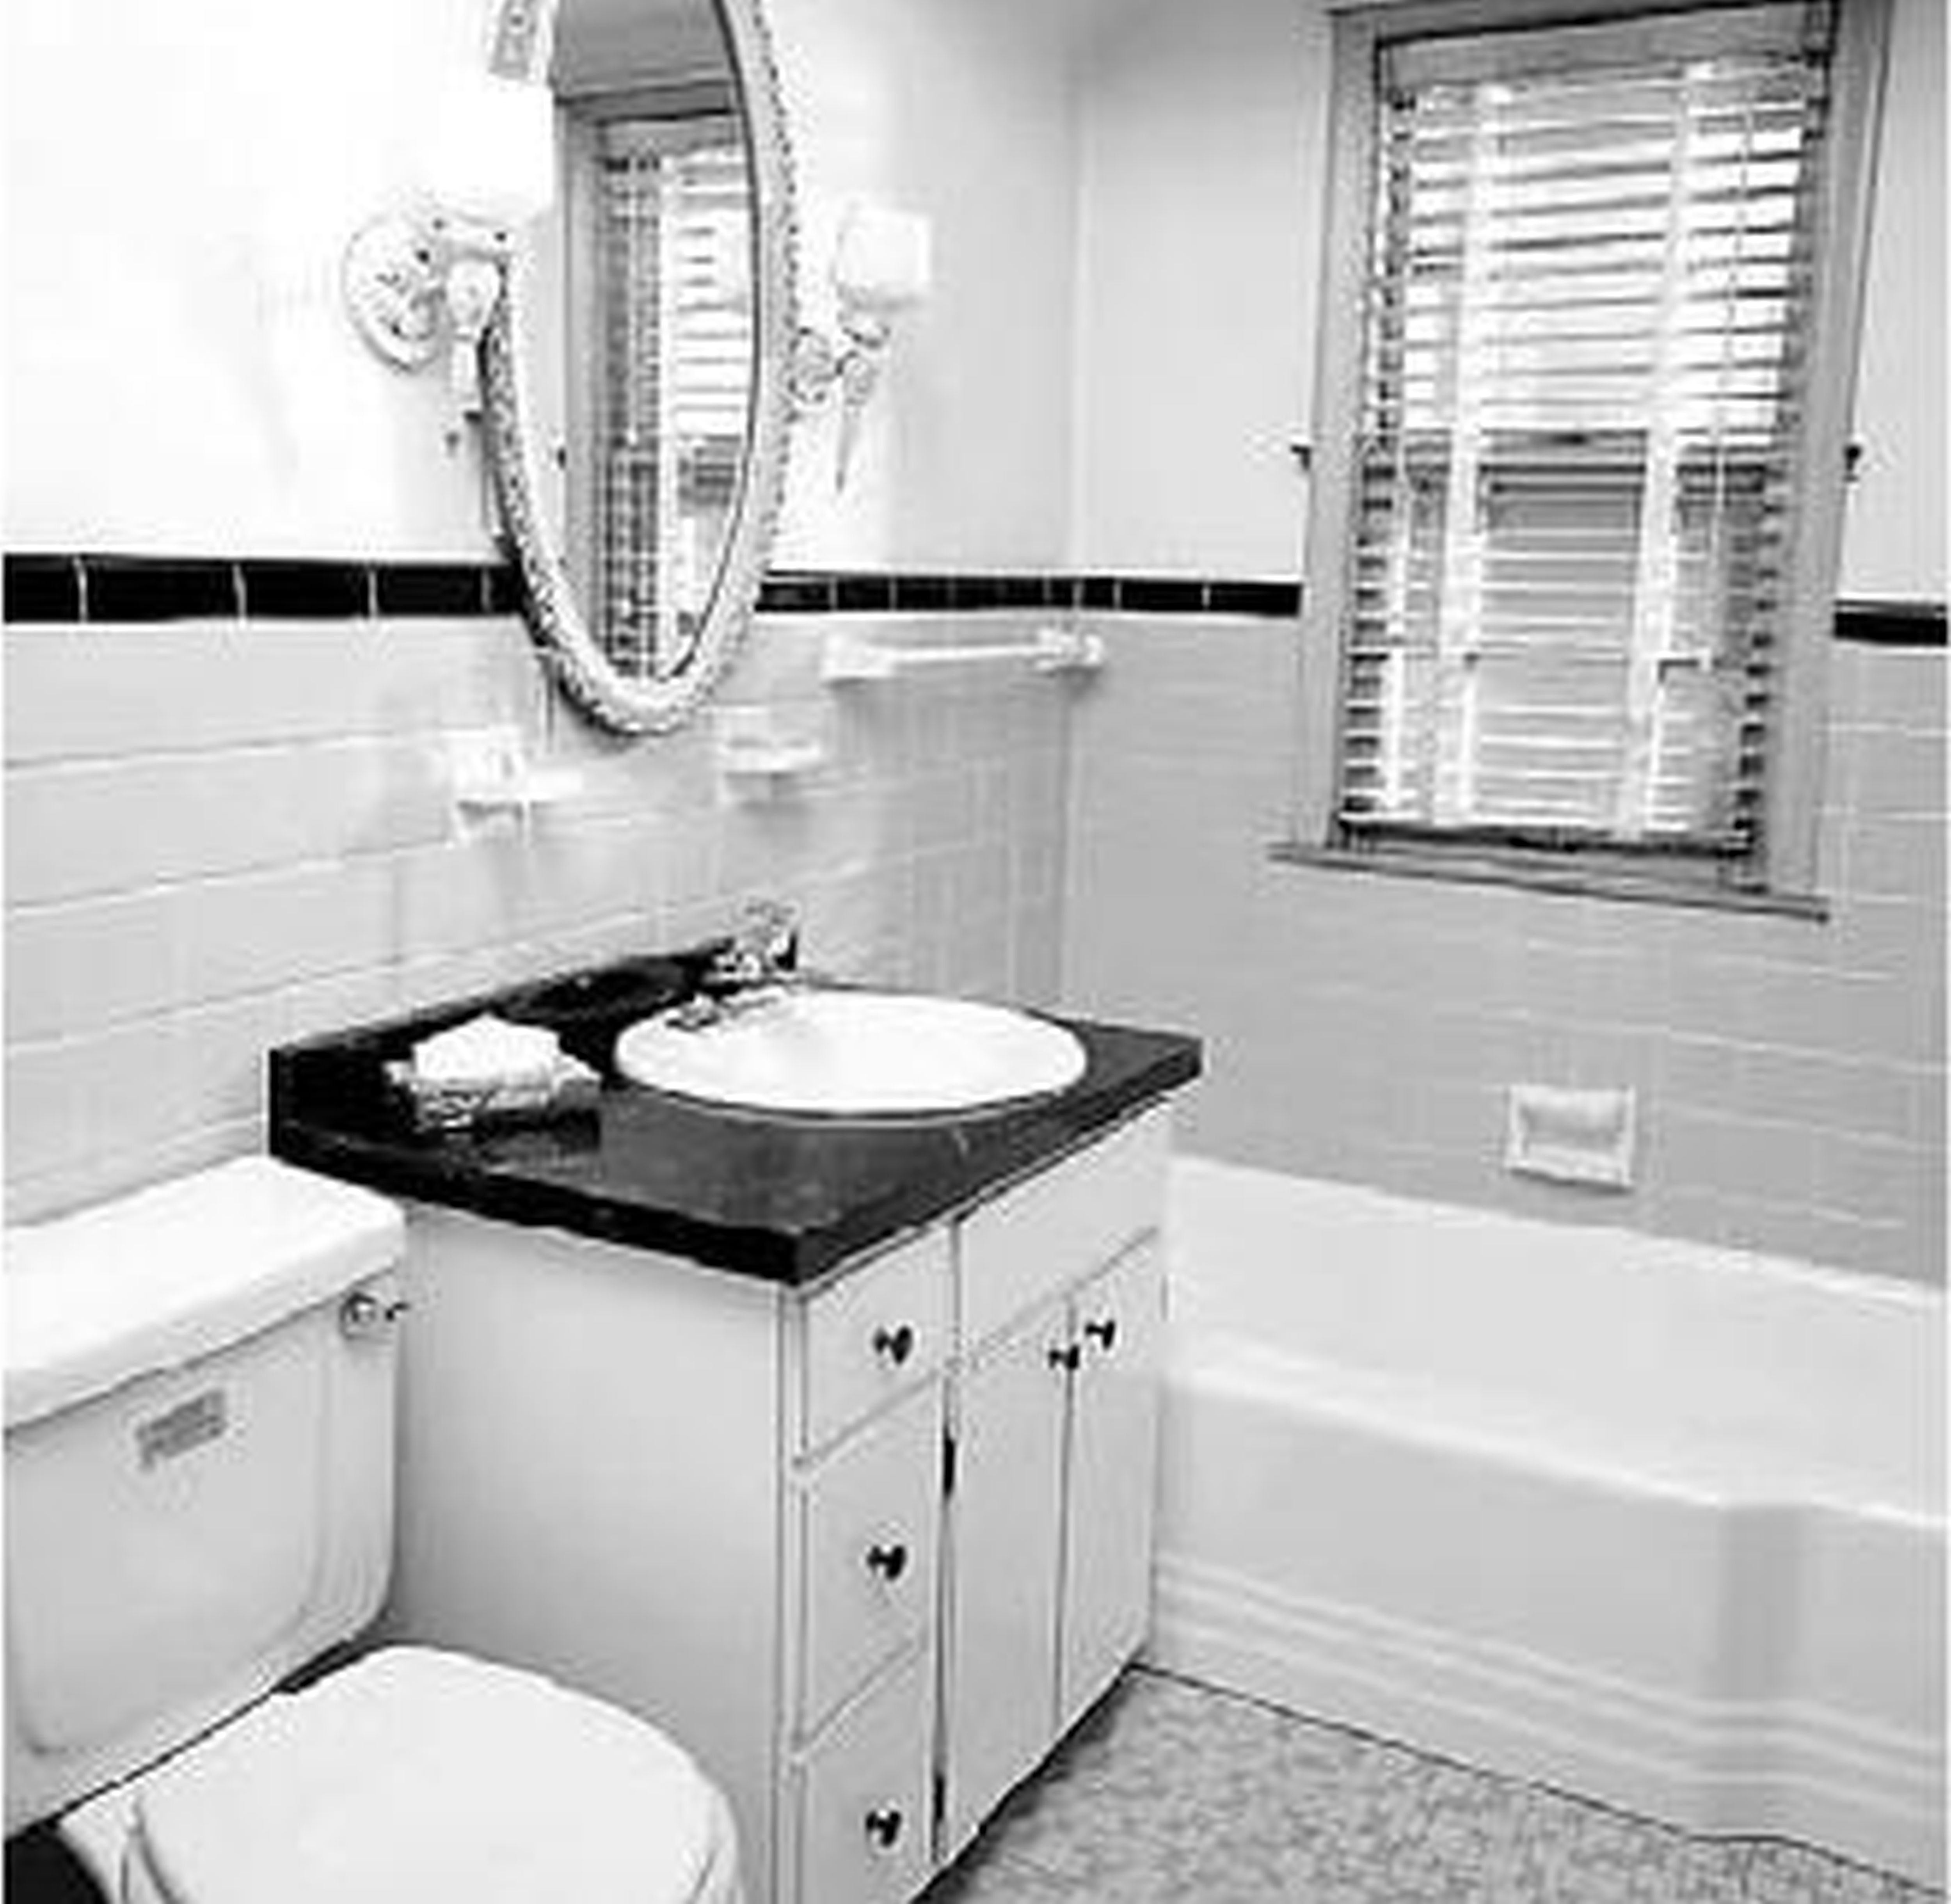 best bathroom wall pictures gallery-Modern Bathroom Wall Pictures Construction